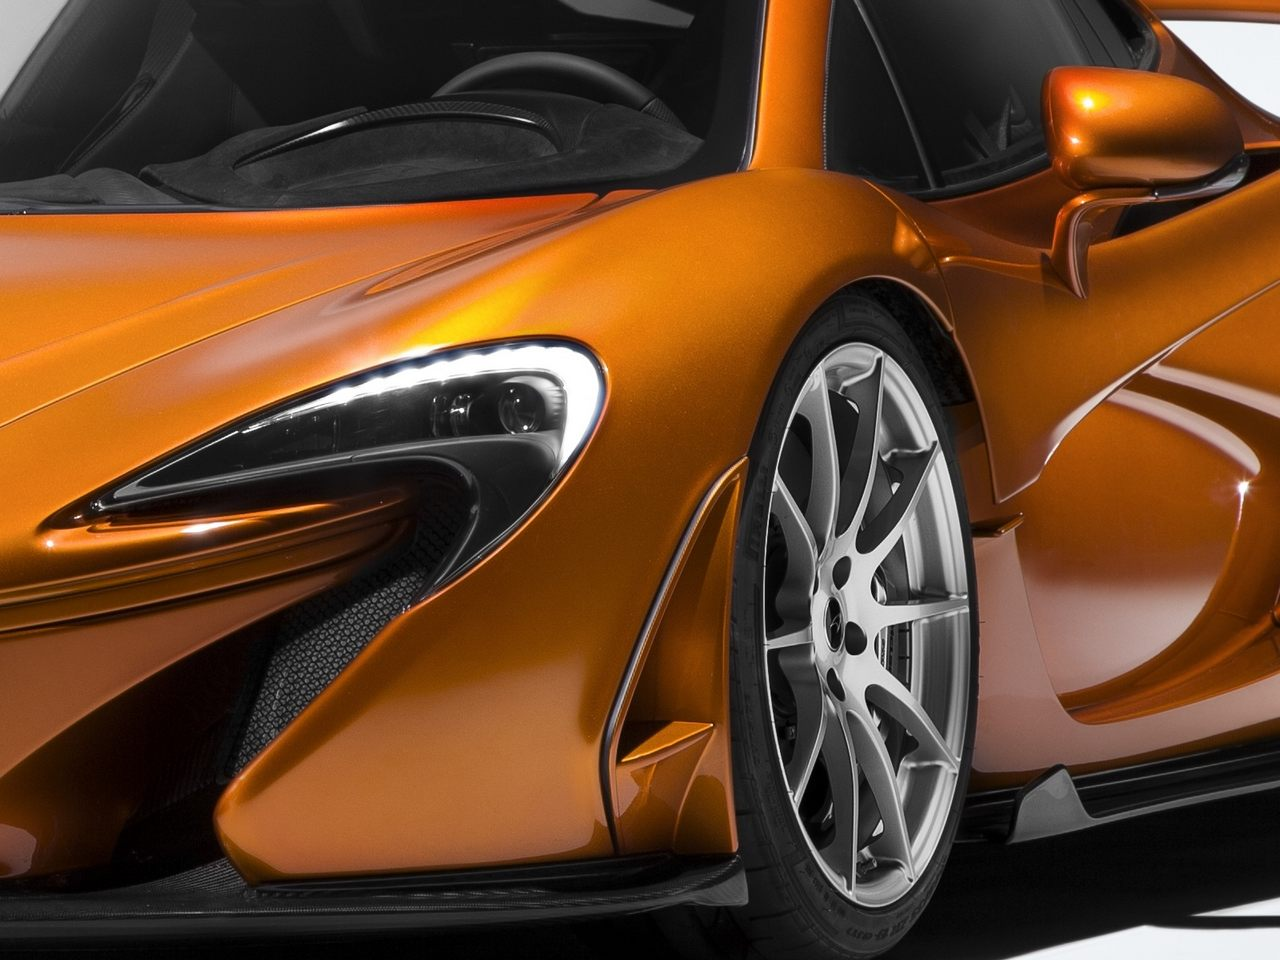 mclaren-f1-first-last-produced-end-production_0-100_5